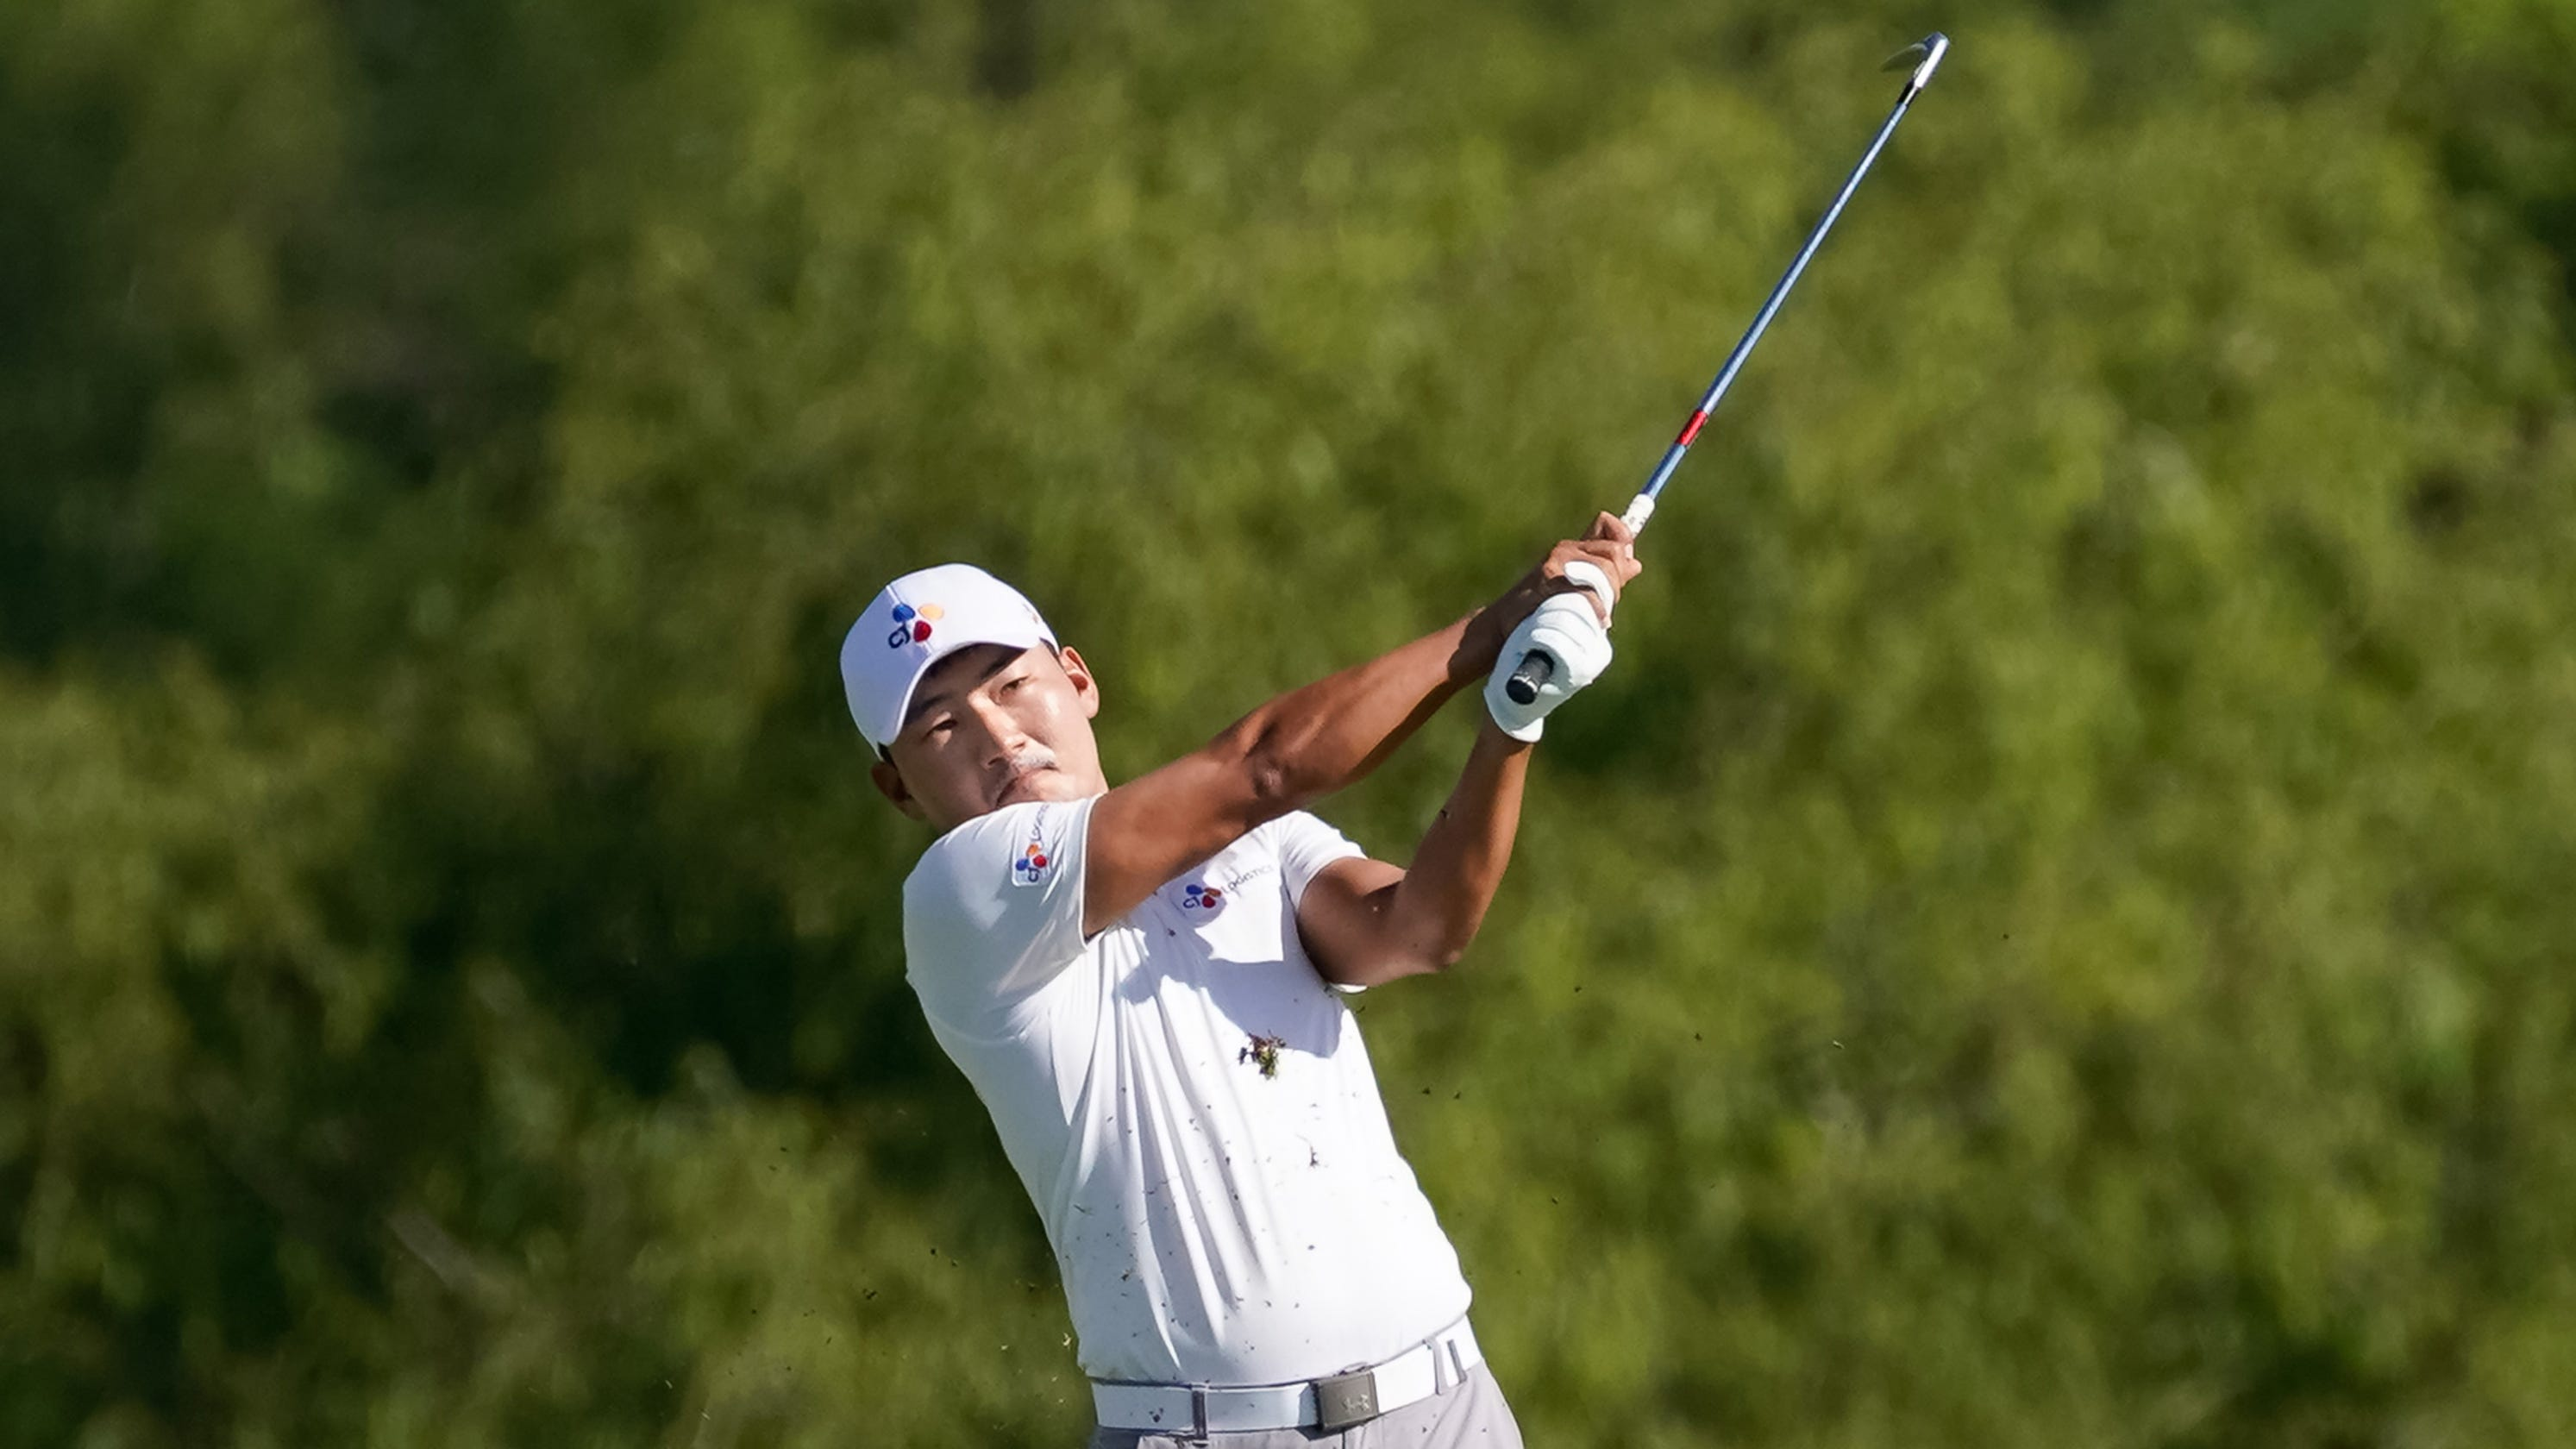 Byron Nelson: Sung Kung Gets First Win Ahead Of PGA